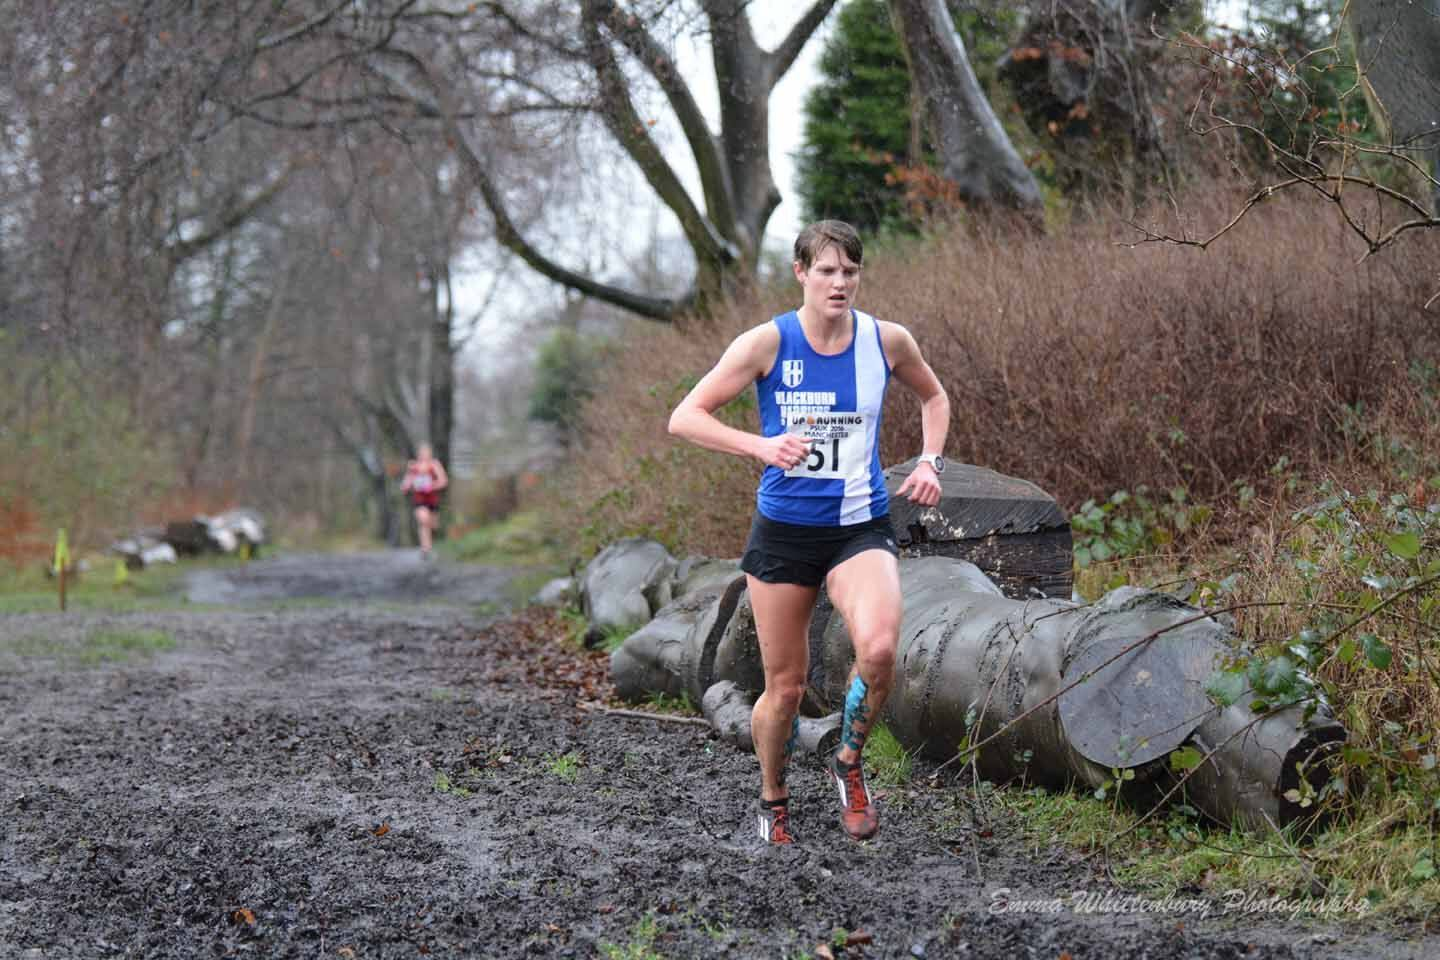 Helen qualifies for European Championships – Evan Tops National Rankings for V65 – Great North Western Half-Marathon